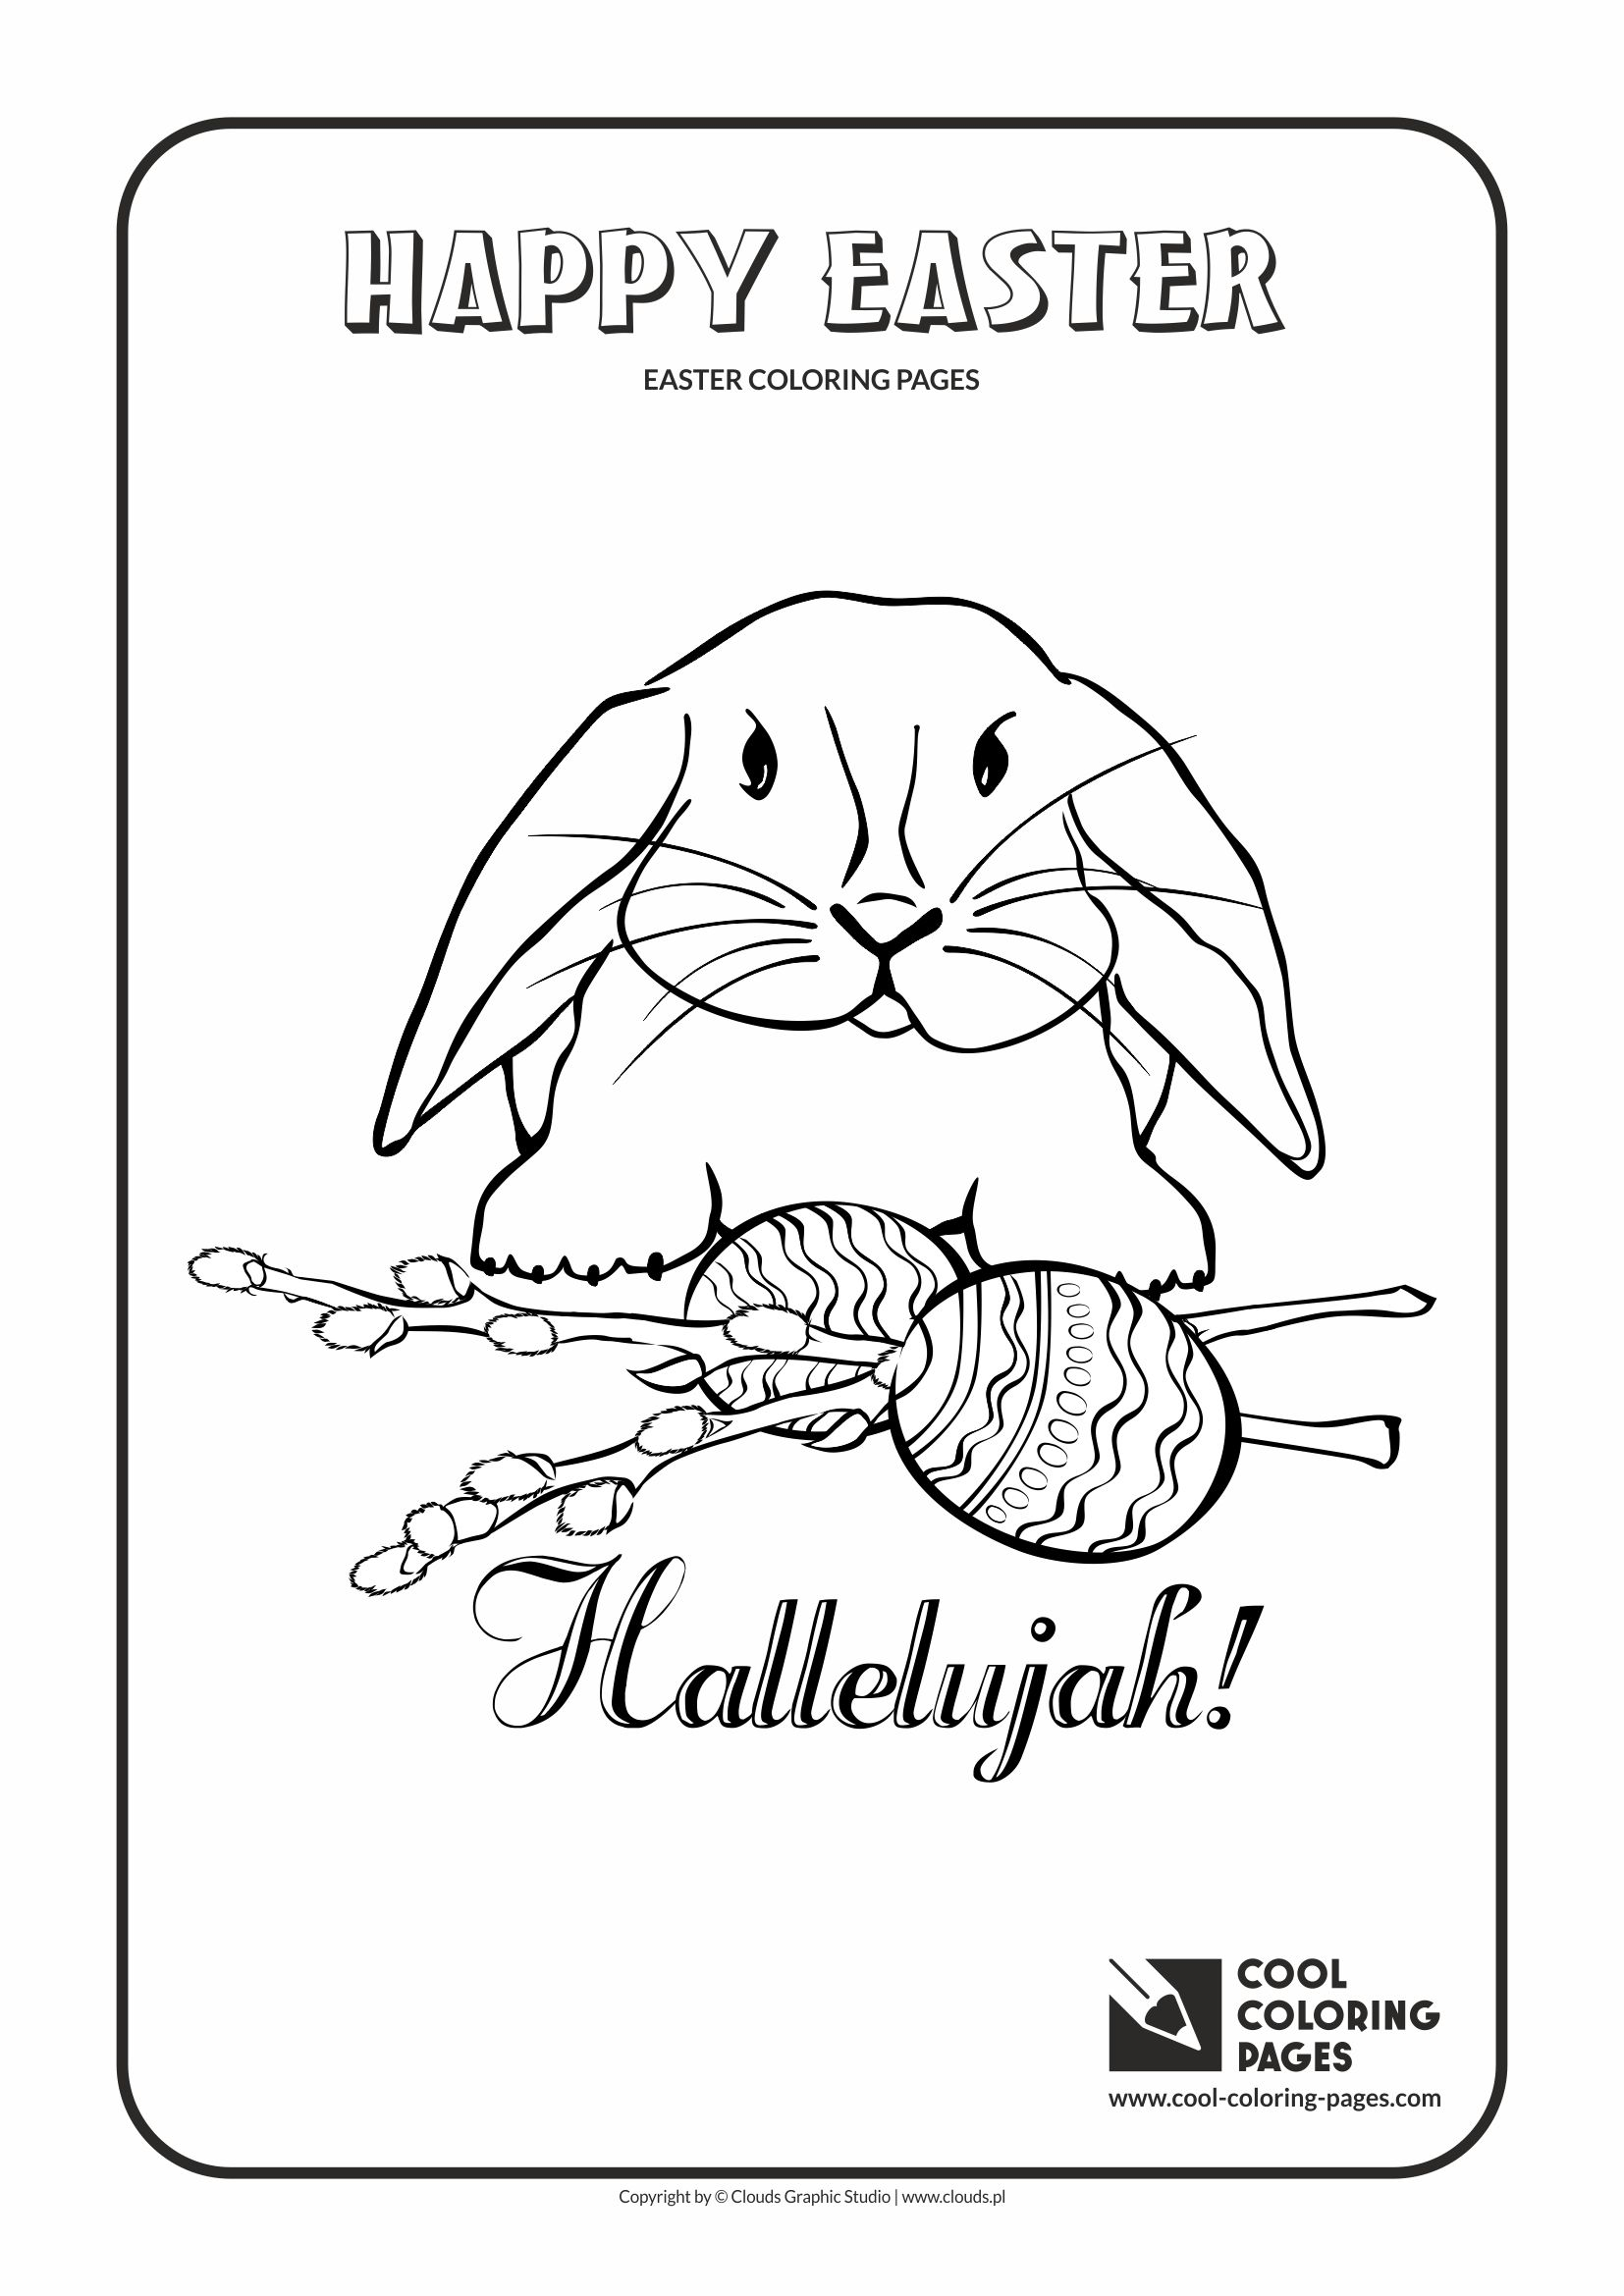 Cool Coloring Pages - Holidays / Easter bunny no 3 / Coloring page with Easter bunny no 3